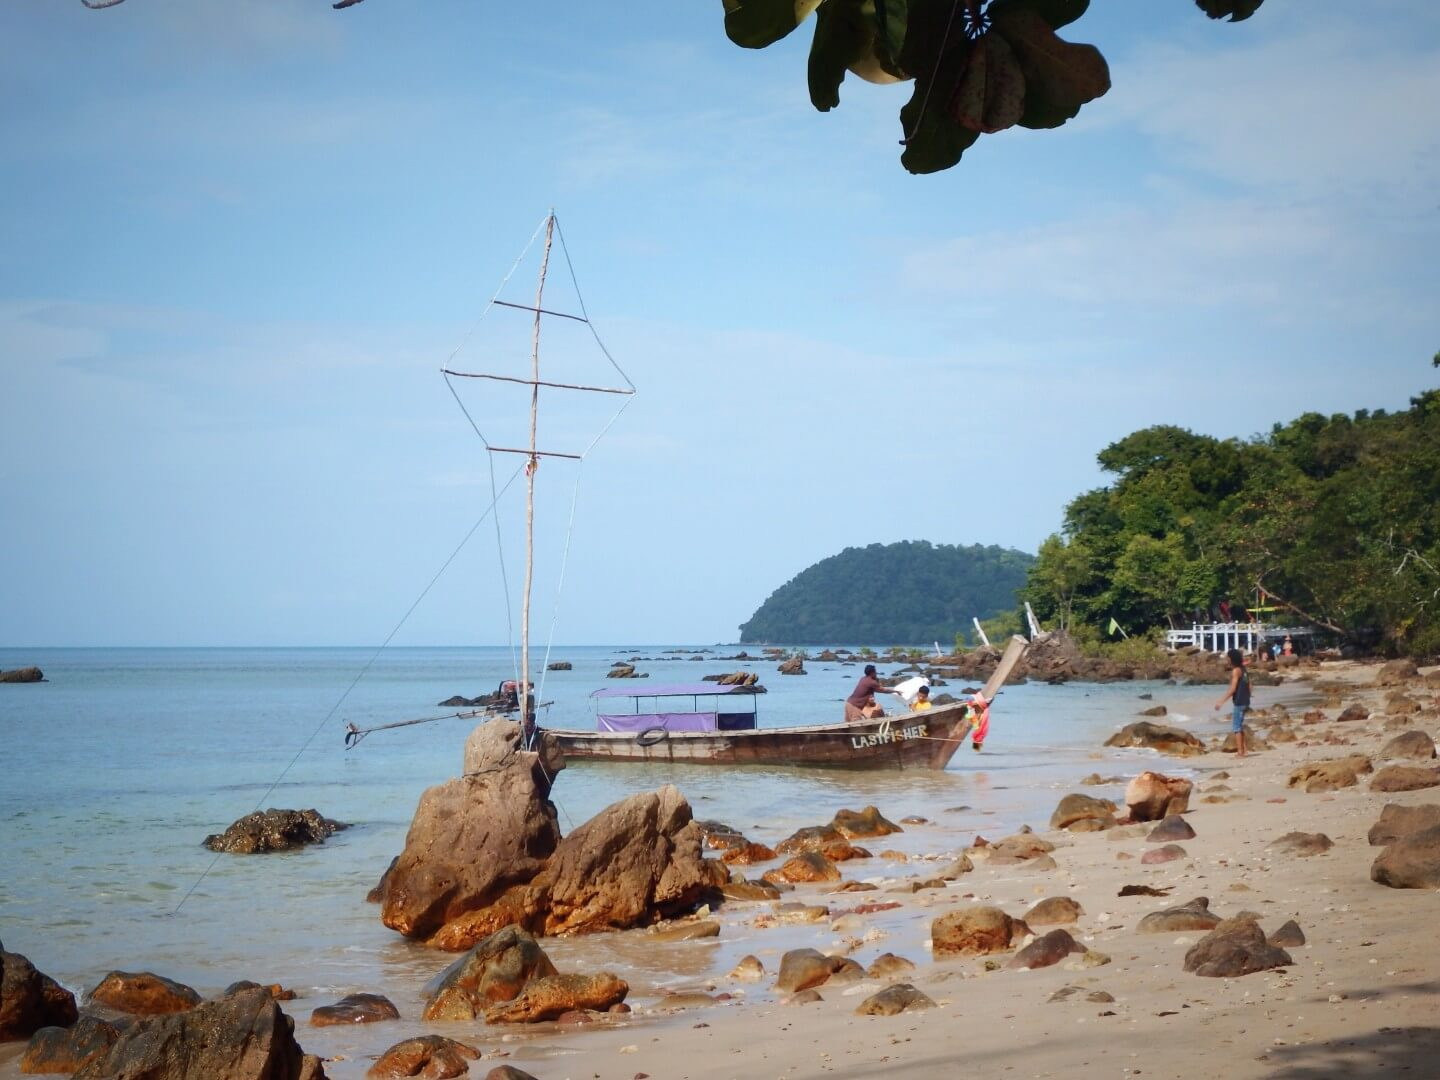 Koh Jum, Thailand Island Hopping - A guide to off the beaten path Thai Island destinations